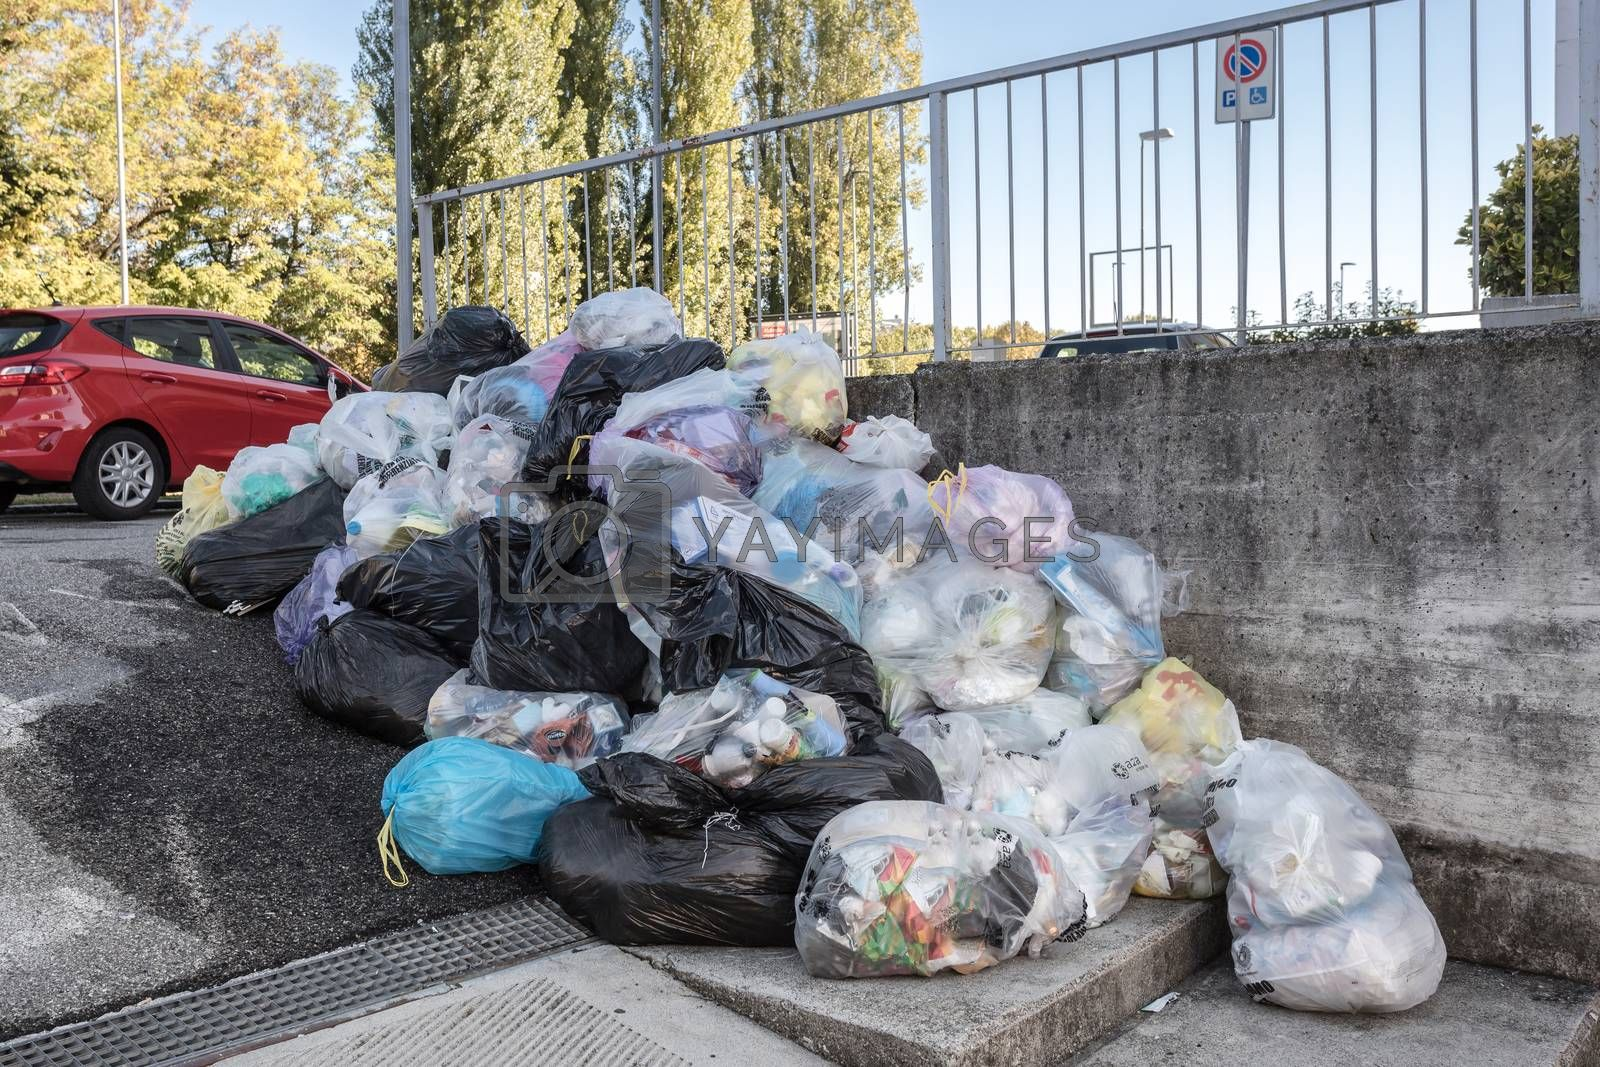 Road and footpath full of garbage / Dirty street. Bergamo, ITALY - October 12, 2020.